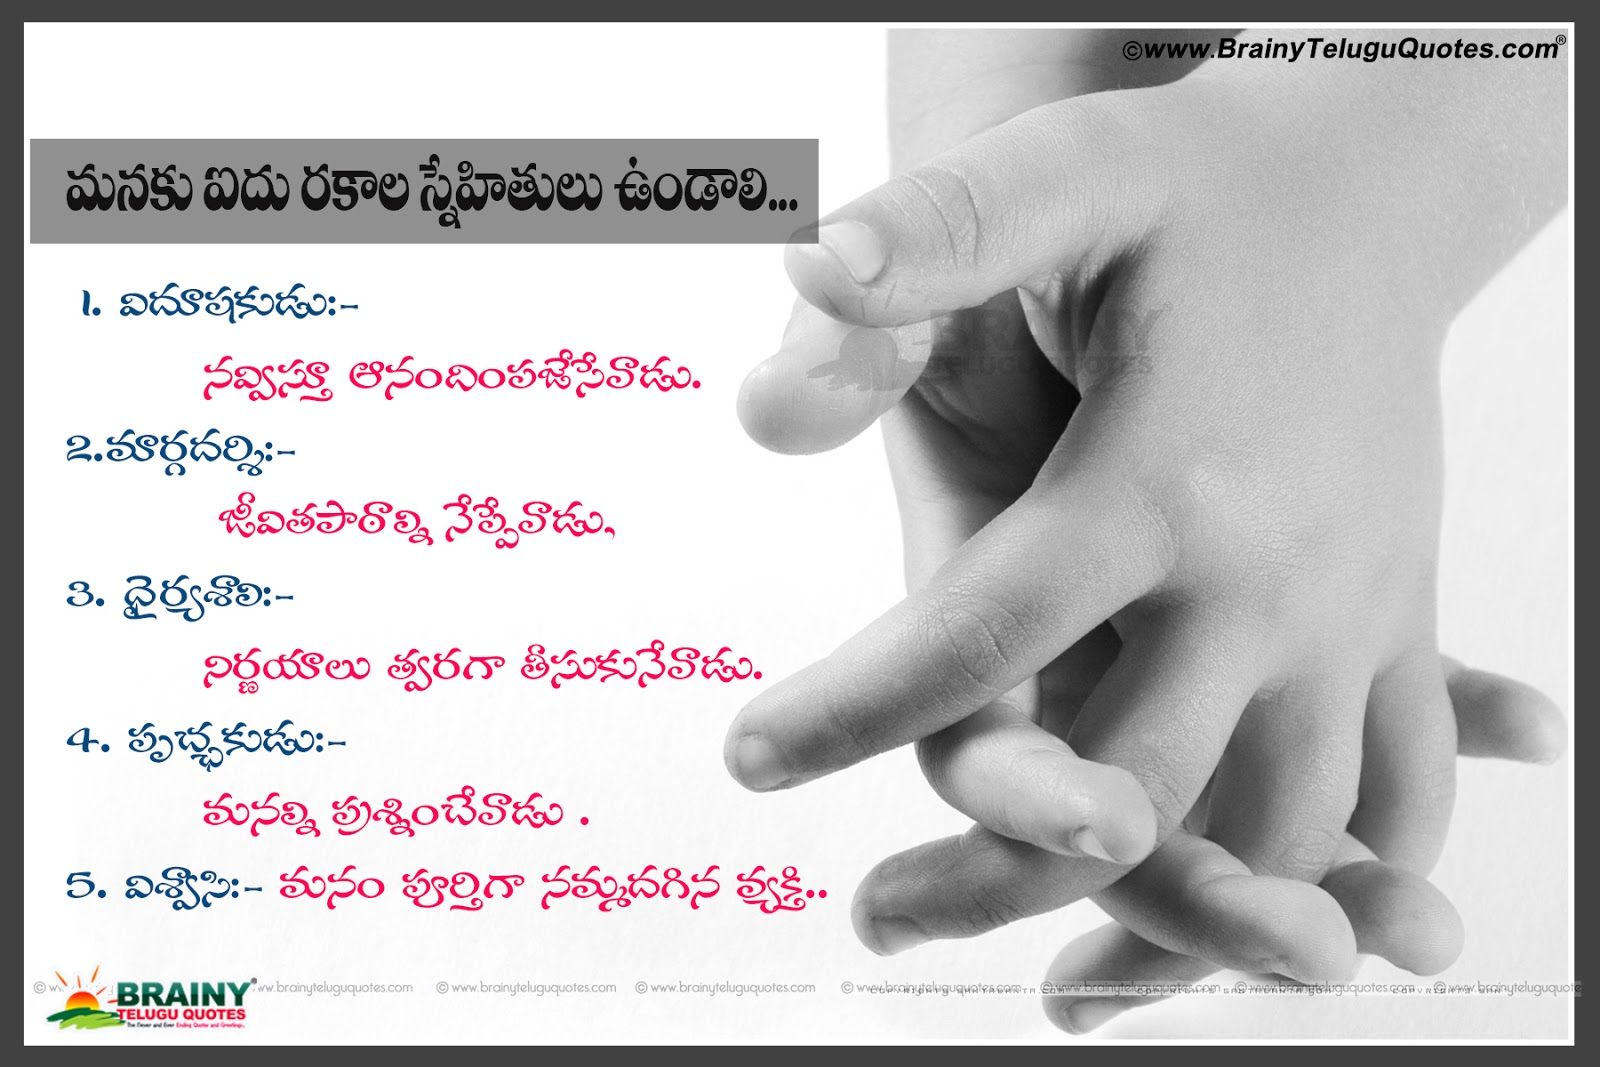 Inspirational Quote About Friendship Best Friendship Inspirational Quotes In Telugu With Types Of